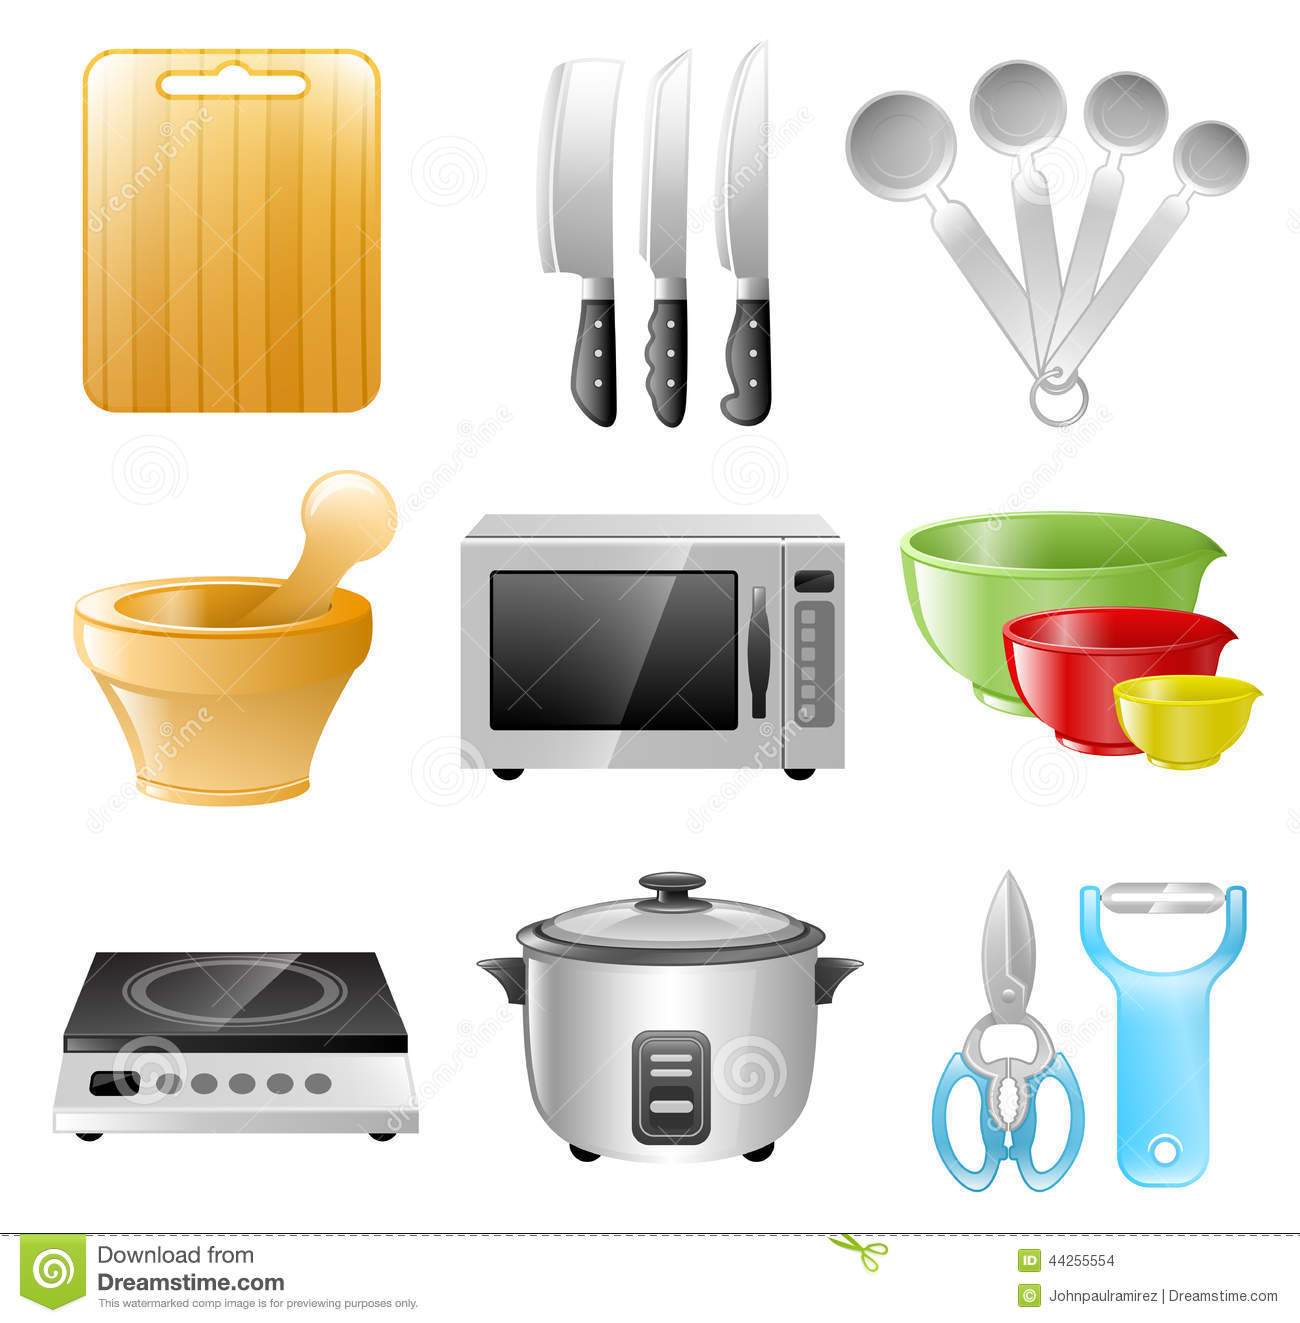 Restaurant Kitchen Illustration kitchen utensils, cooking, restaurant stock vector - image: 44255554